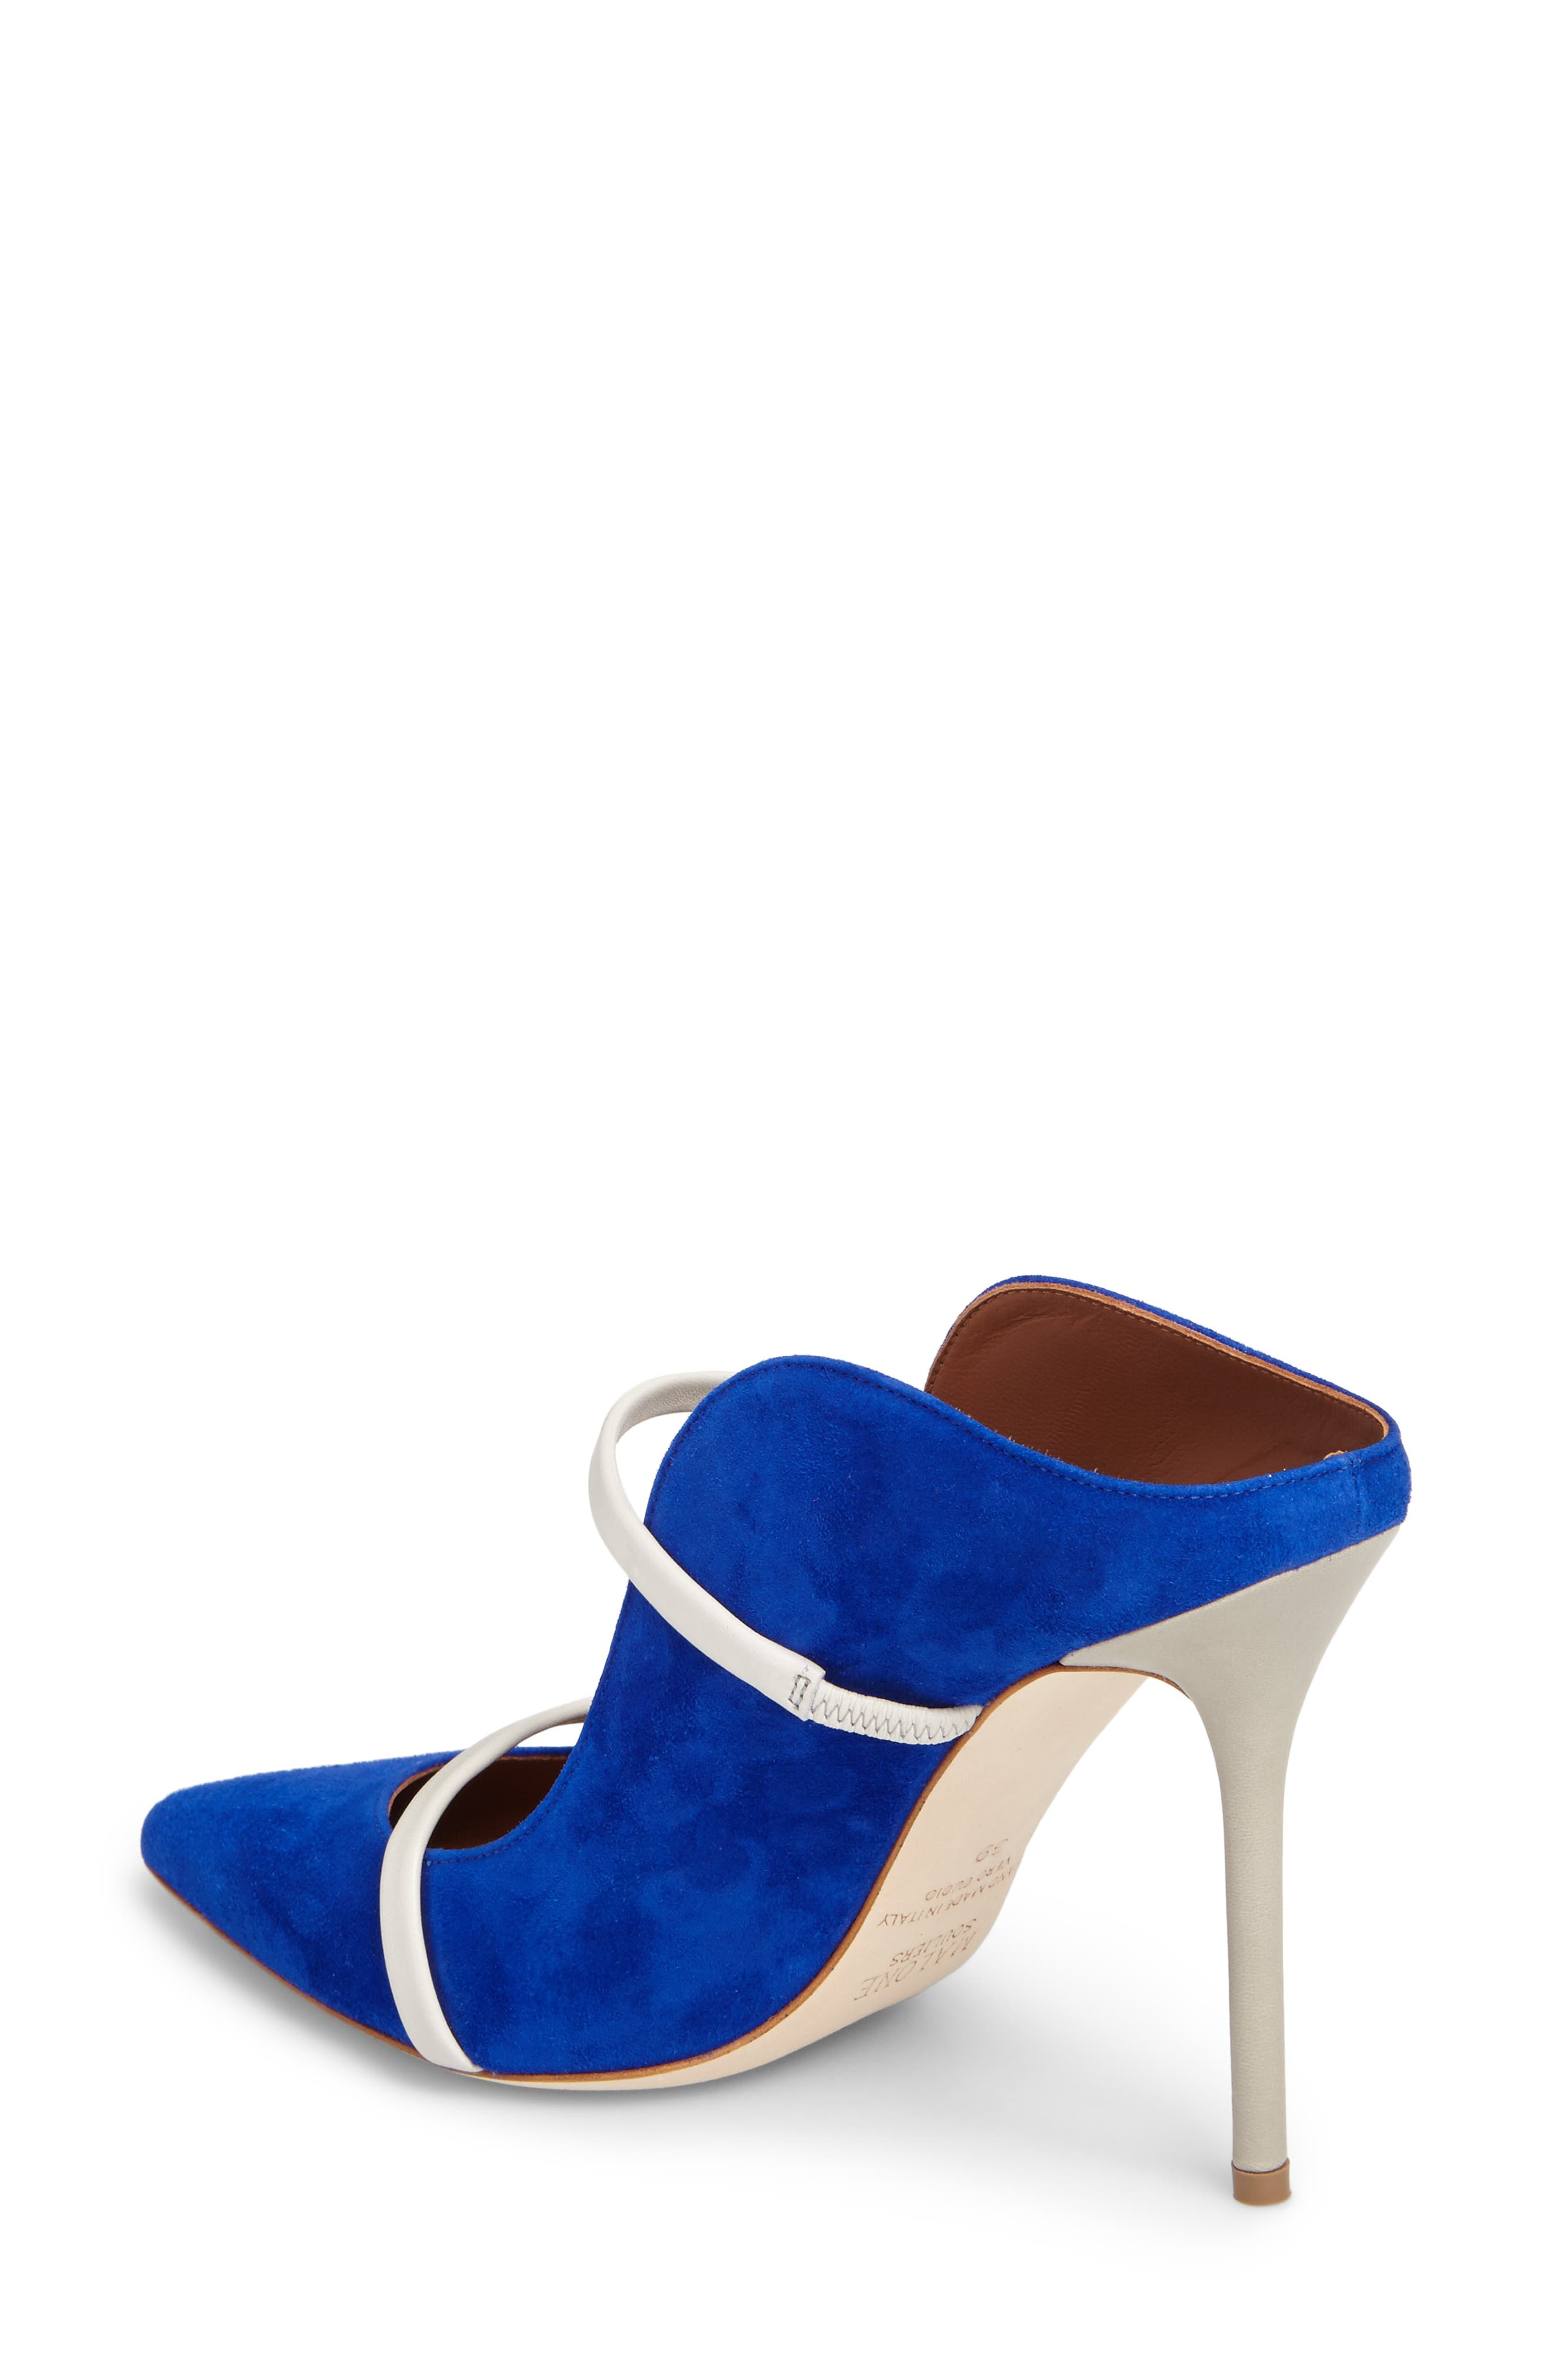 Maureen Double Band Mule,                             Alternate thumbnail 2, color,                             Electric Blue/ Foam/ Grey